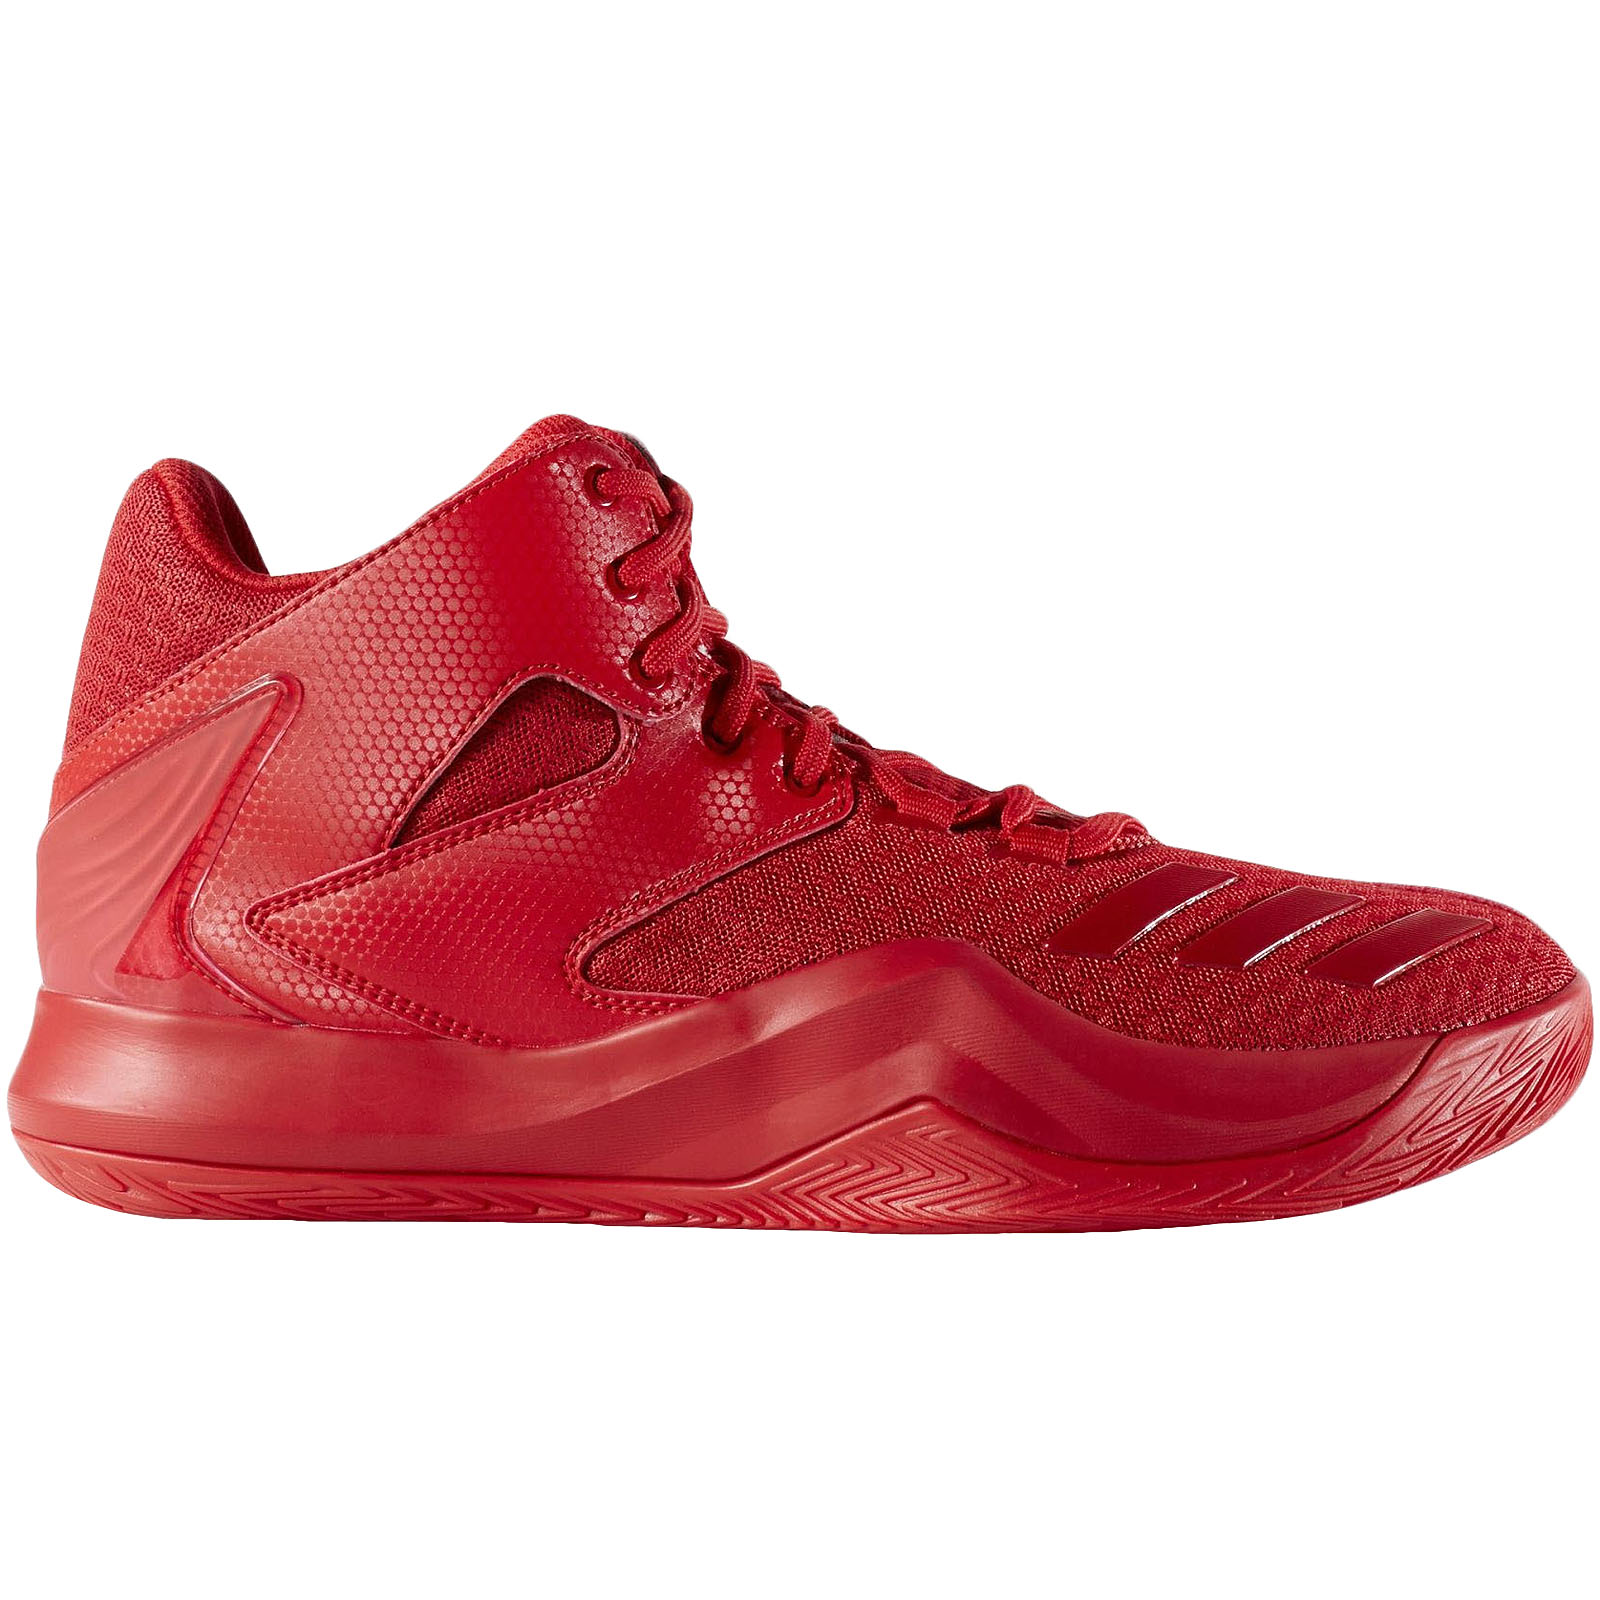 a55e8533fbdb Details about adidas Performance Mens Derrick Rose 773 V Basketball  Trainers Shoes - Scarlet